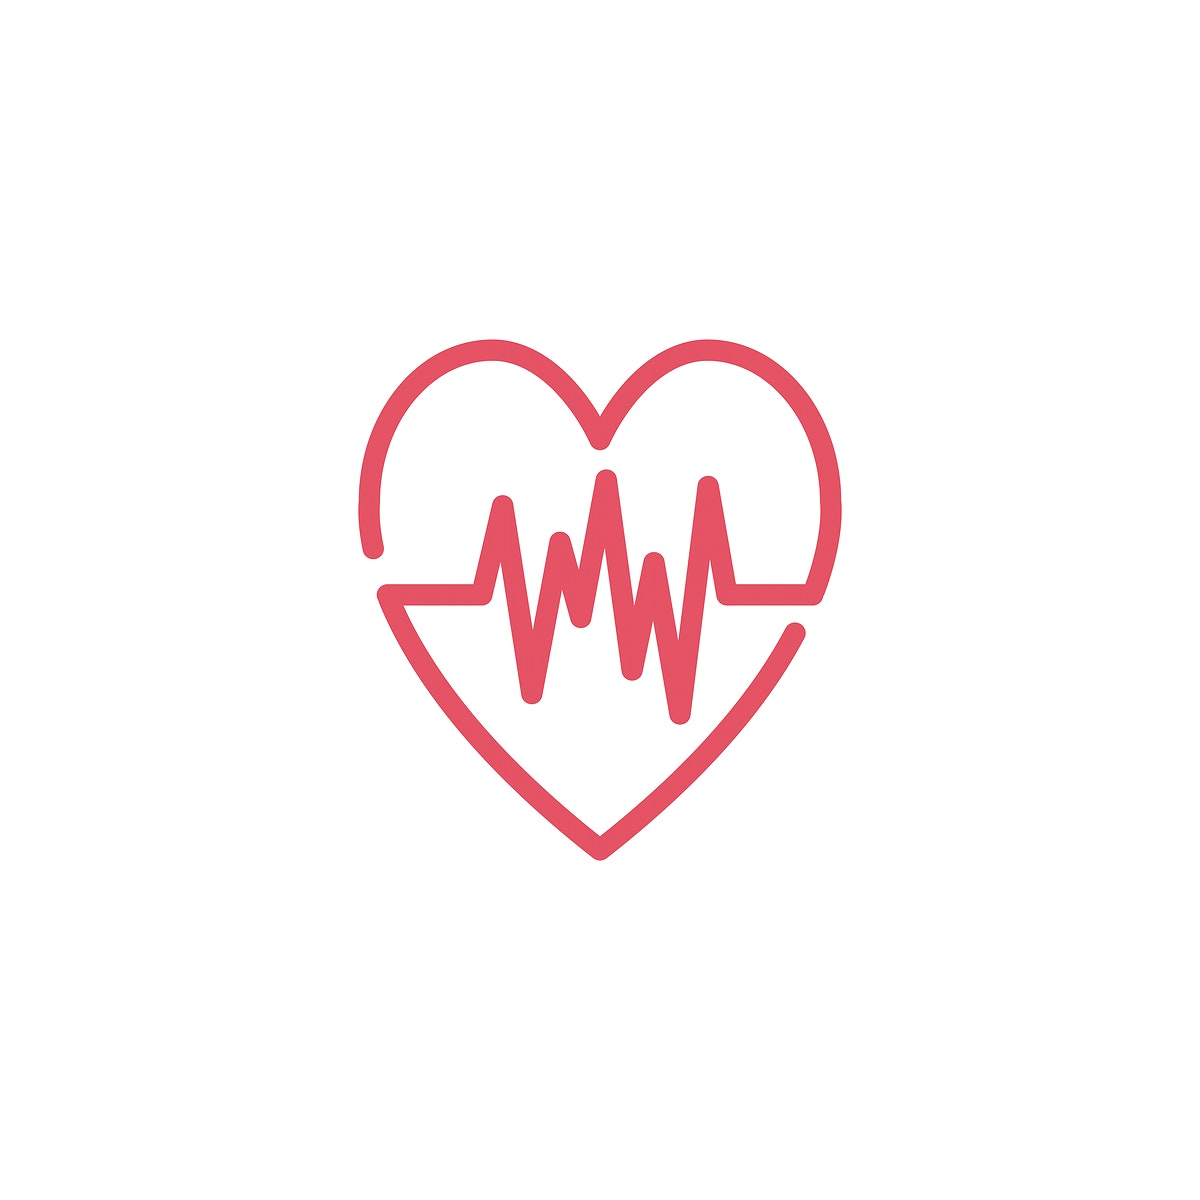 Heart rate cardiogram icon illustration